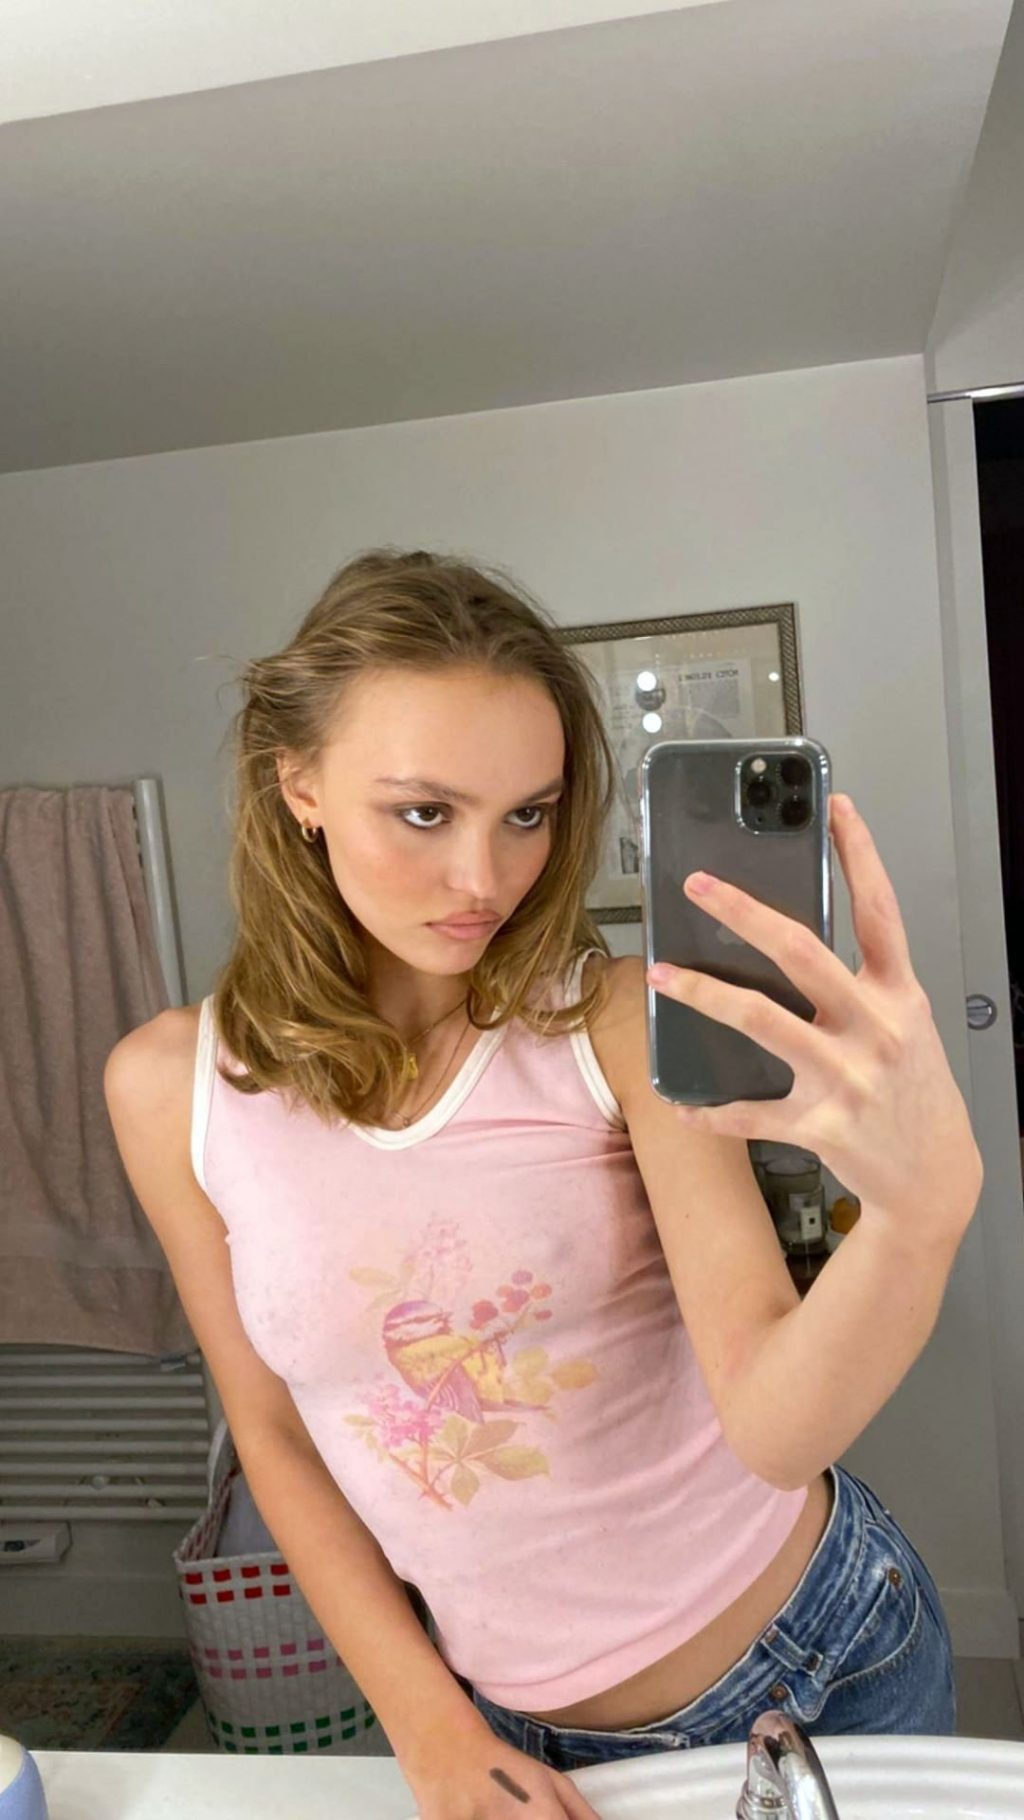 Lily-Rose Depp Braless (1 Photo)